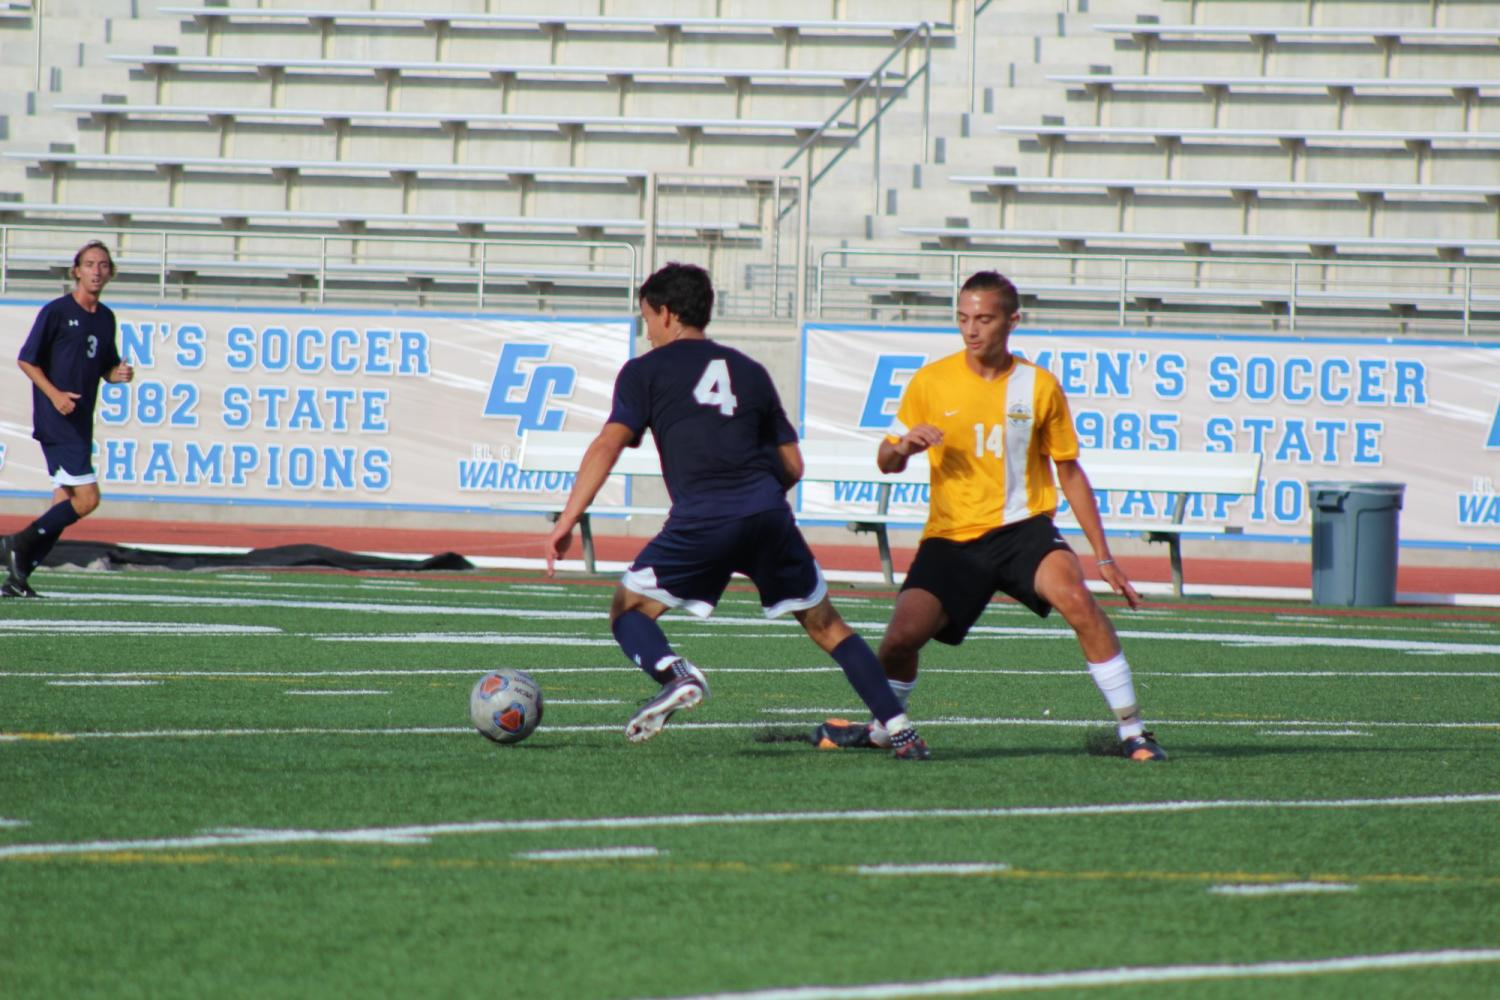 Three-game winning streak for men's soccer team snapped by Golden West